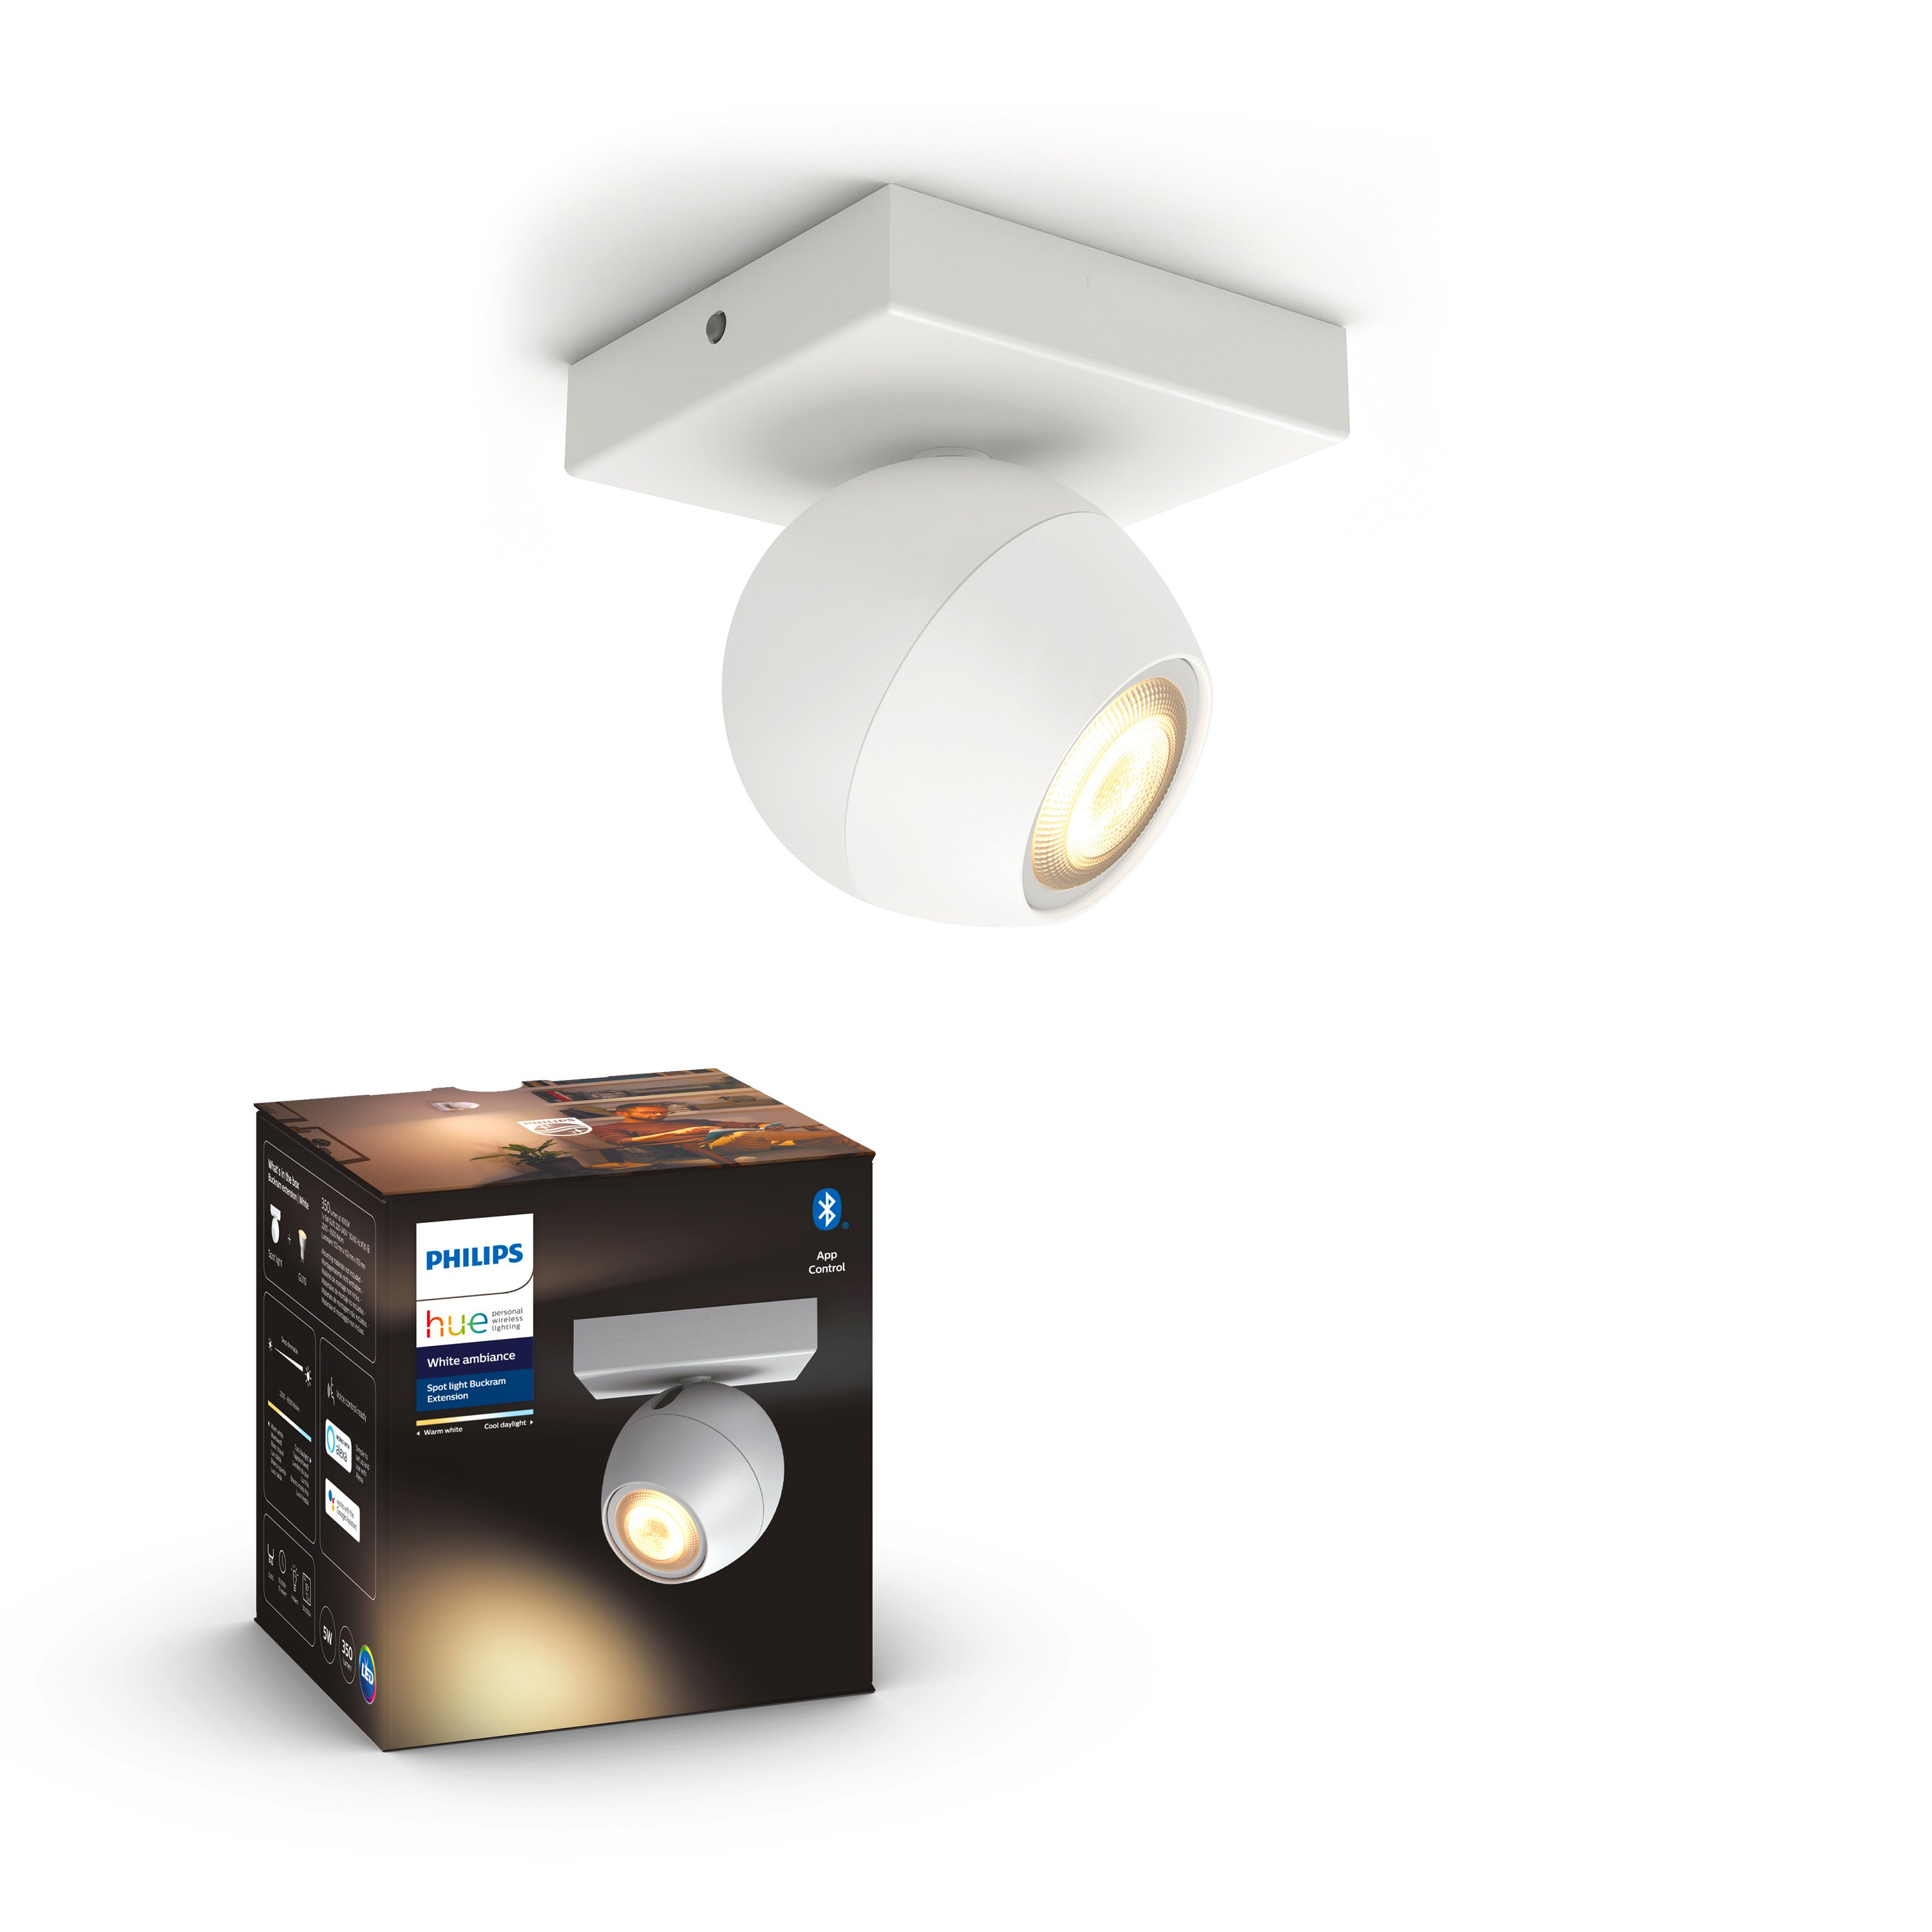 Philips Hue - BUCKRAM single spot white 1x5.5W 230V - White Ambiance - Bluetooth Without Dimmer